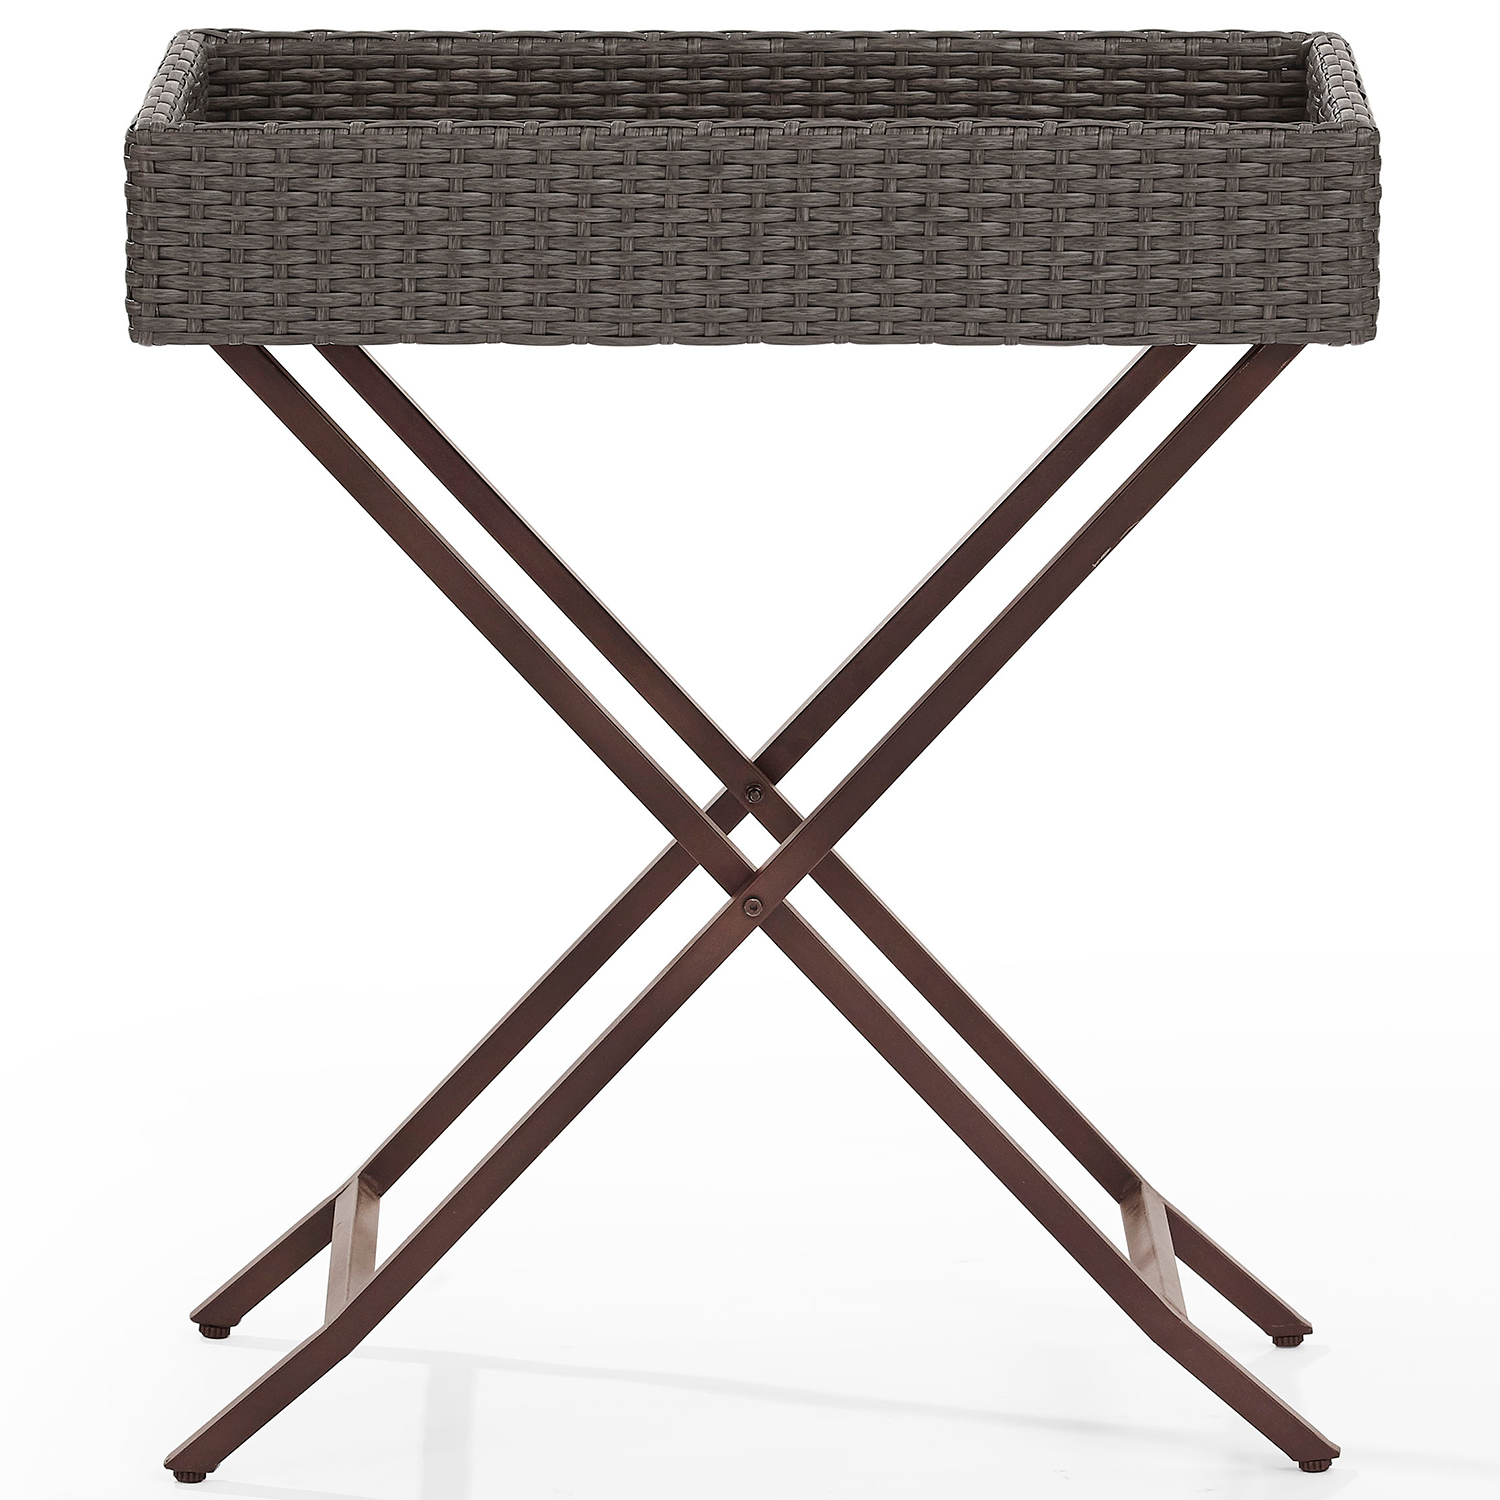 Crosley CO7206 WG Palm Harbor Outdoor Resin Wicker Butler Tray Table